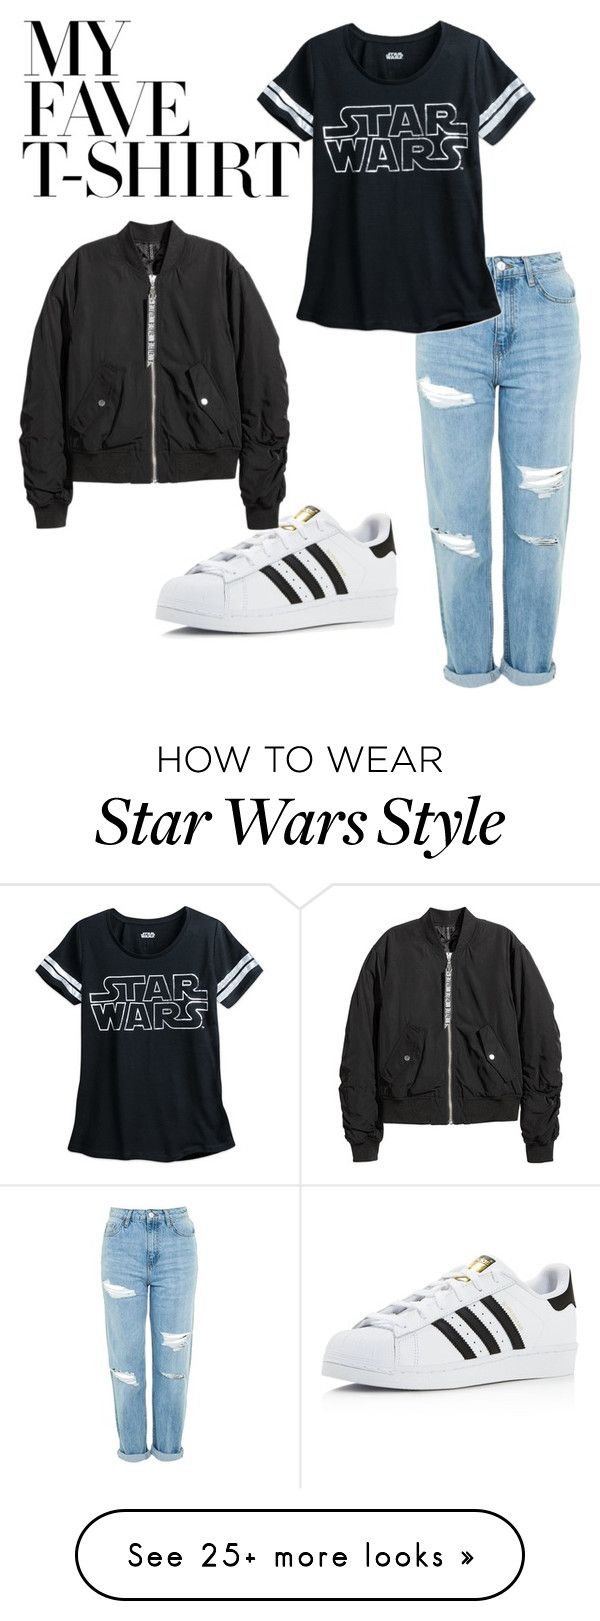 """""""Untitled #31"""" by valeriaecheverria on Polyvore featuring Topshop, adidas and MyFaveTshirt"""